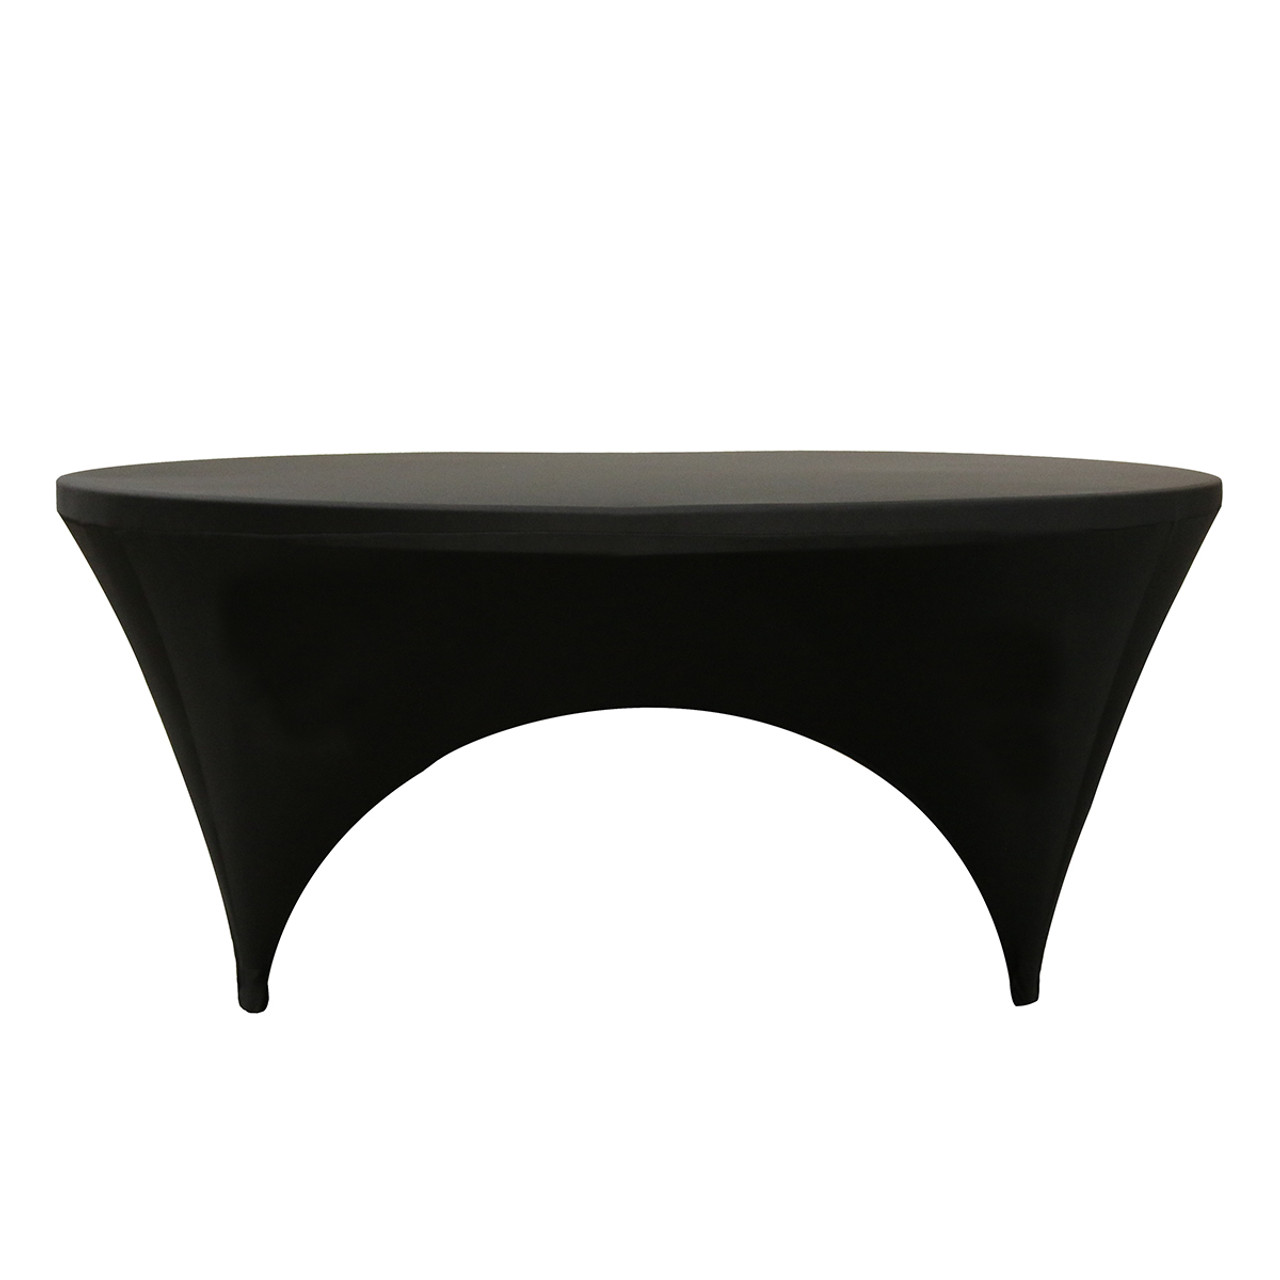 225 & 6 ft Round Open Sides Spandex Table Cover Black